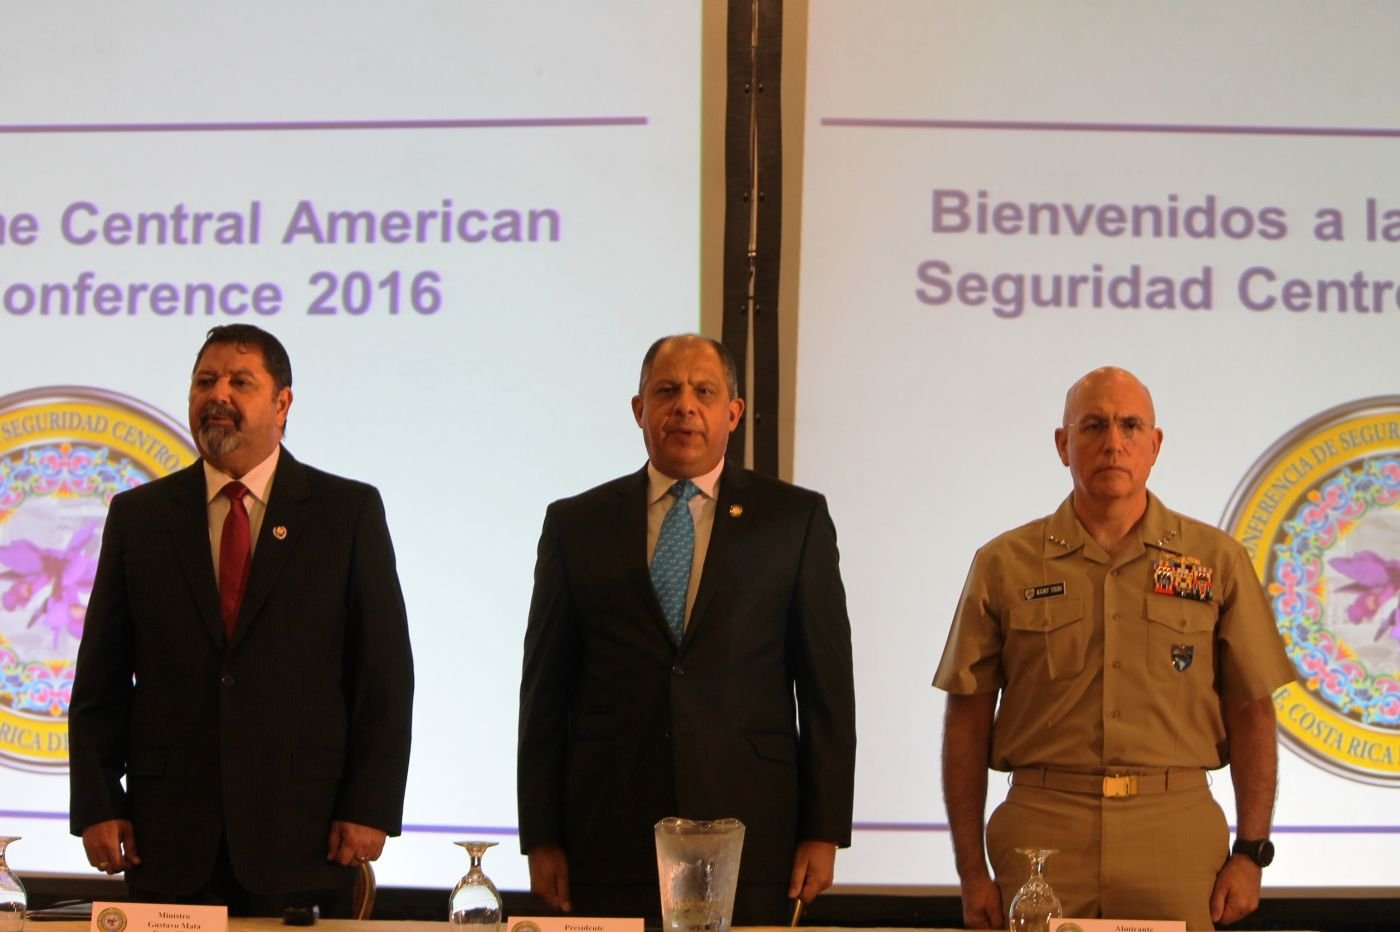 Seizing a 'Transformational Moment' in U.S.-Central America Relations